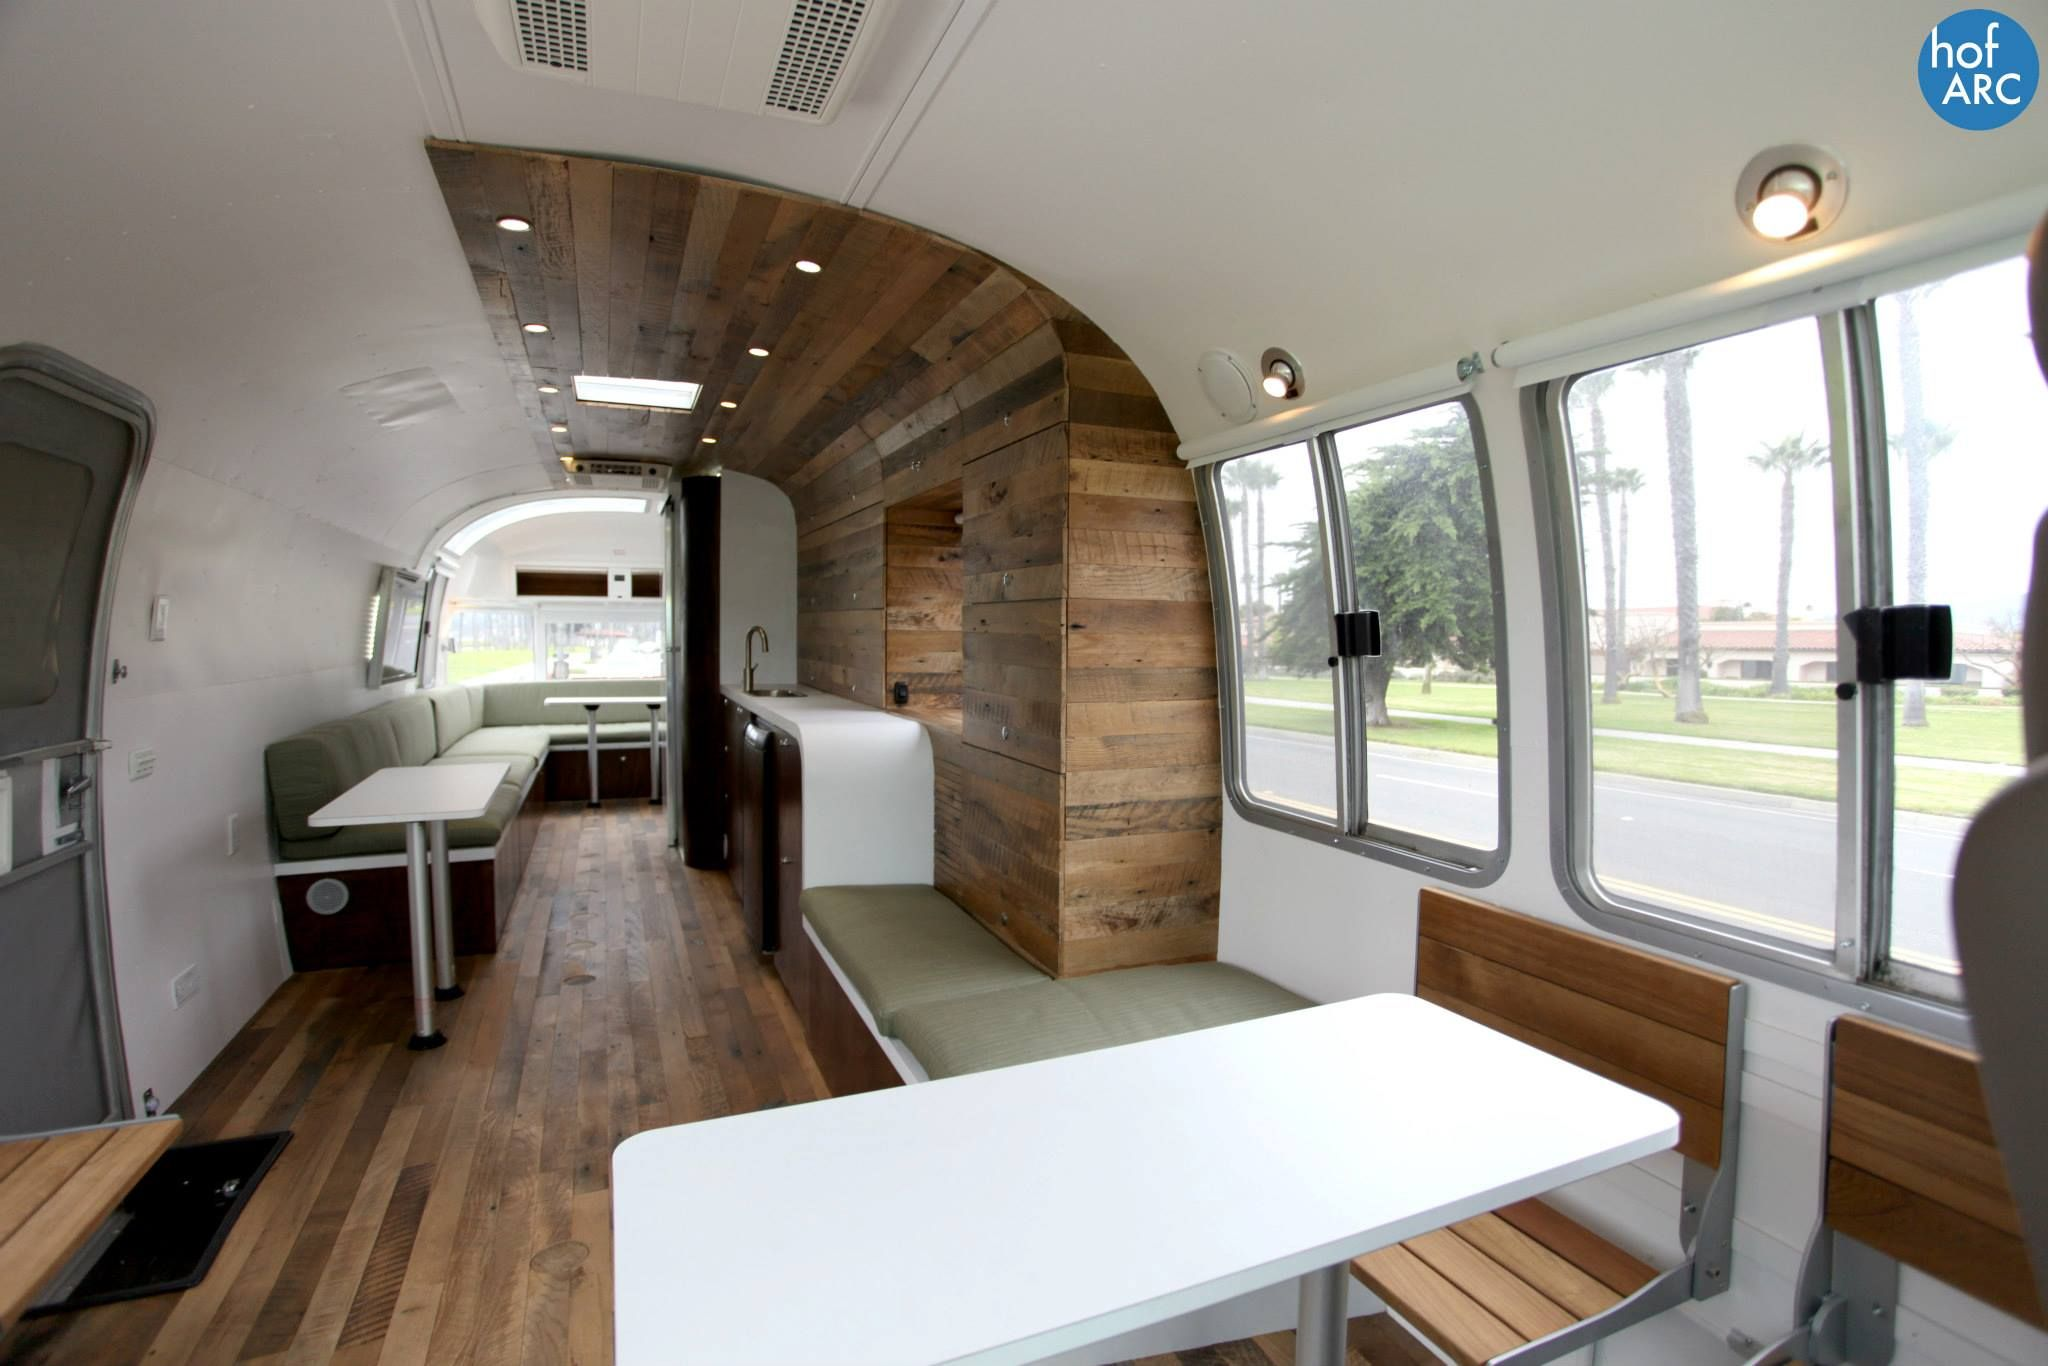 airstream motorhome tiny house dreams airstream. Black Bedroom Furniture Sets. Home Design Ideas